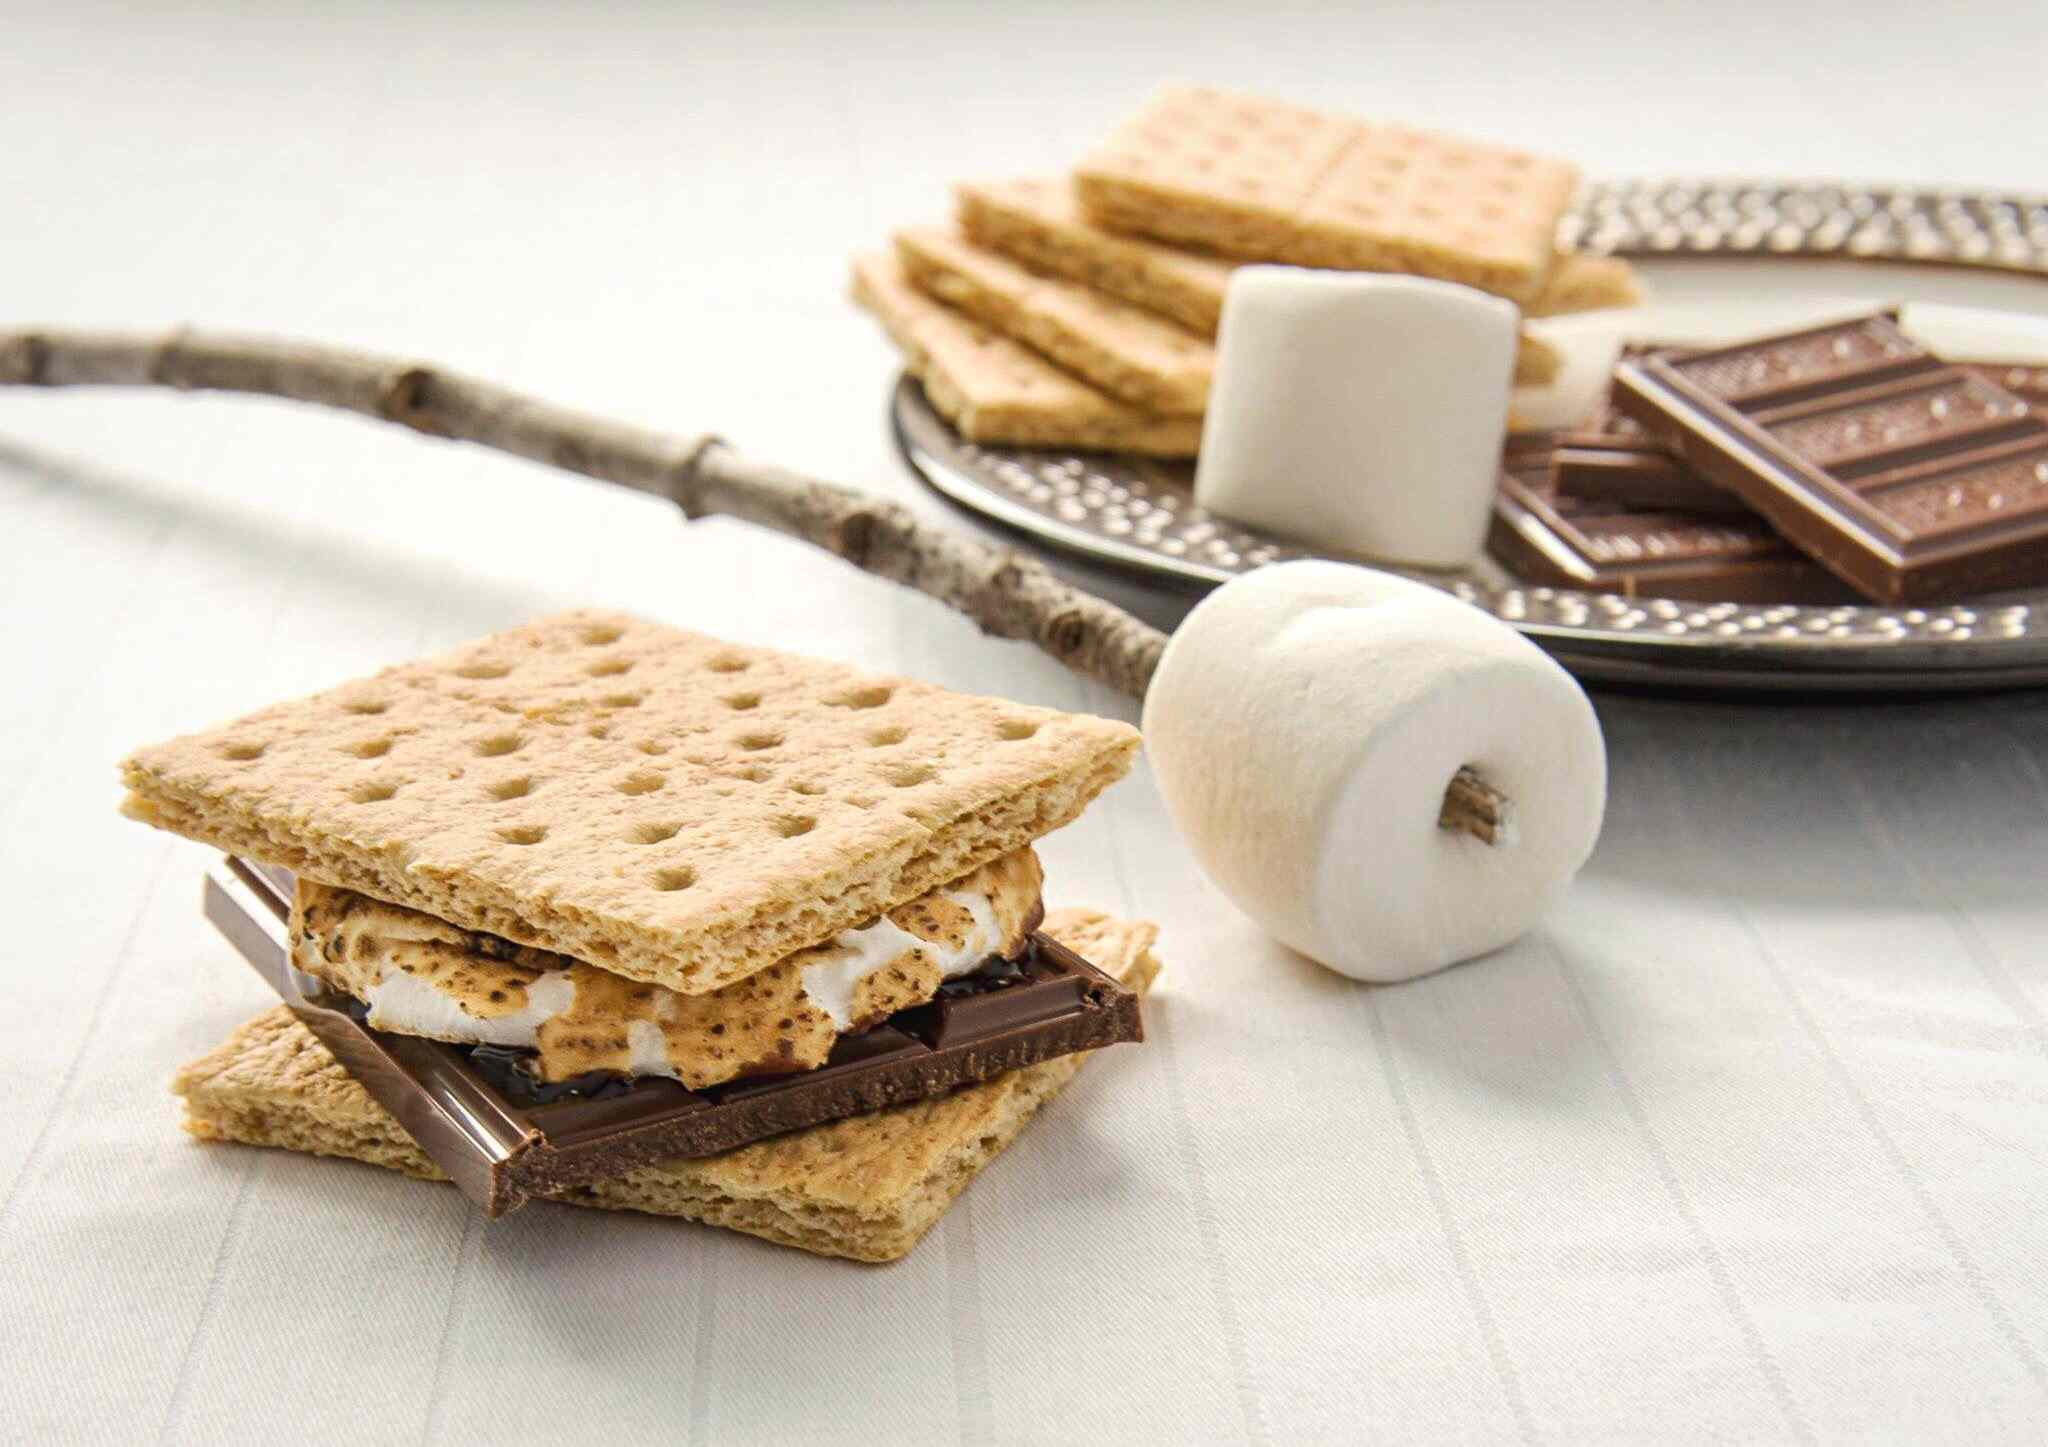 Smores On Table